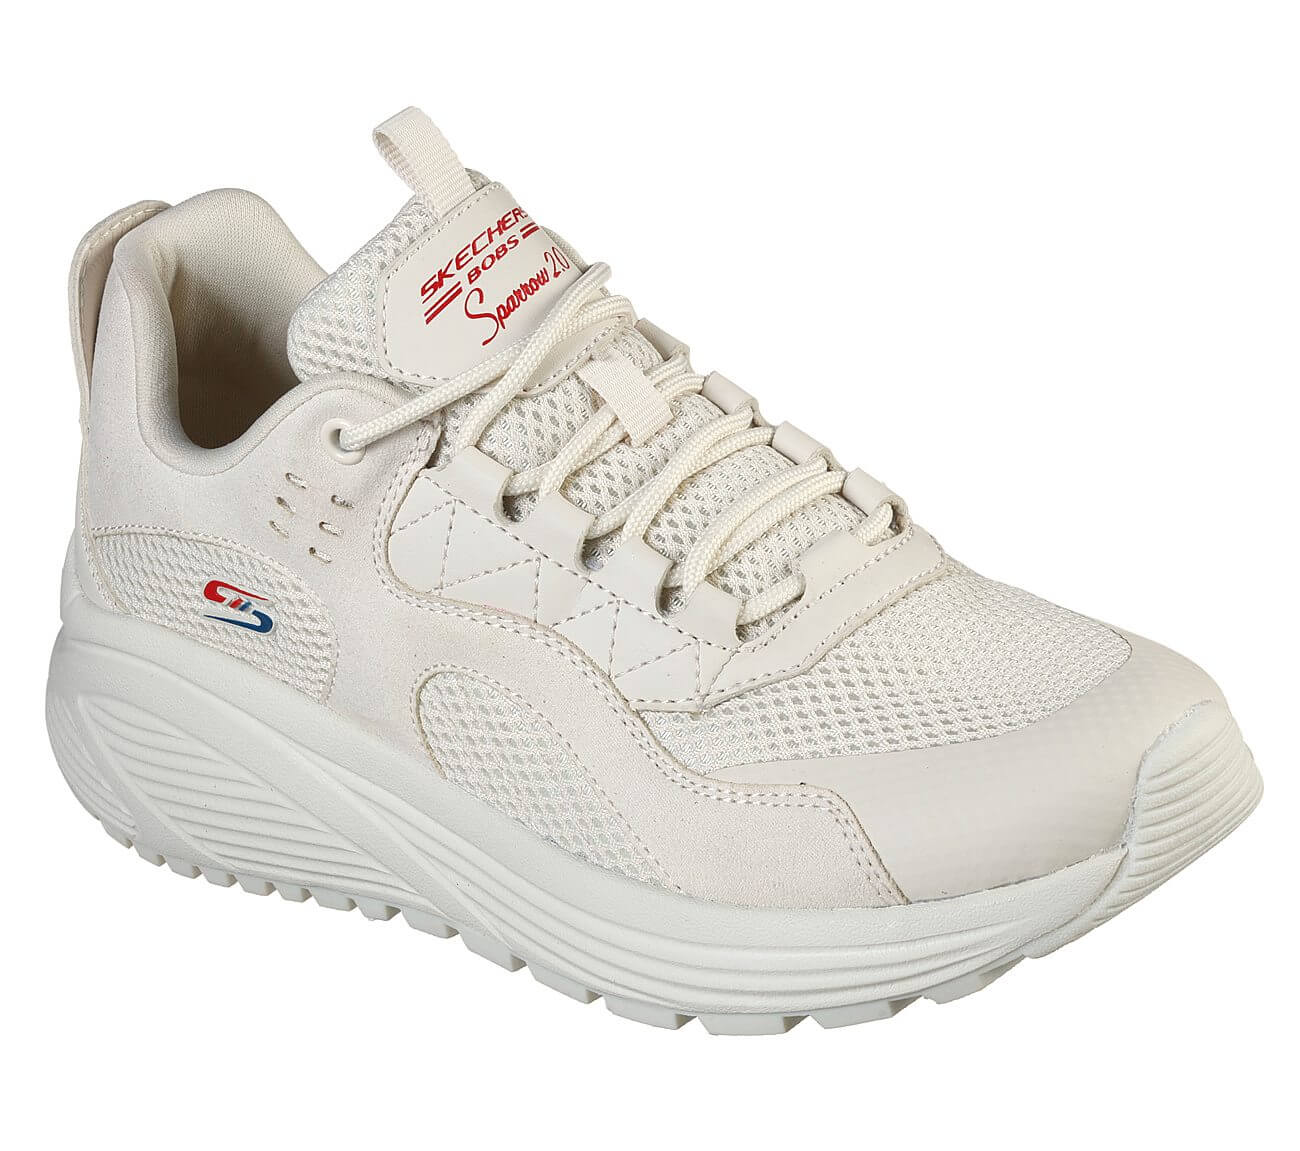 White Urban Walking Shoes | Skechers Bobs Sparrow